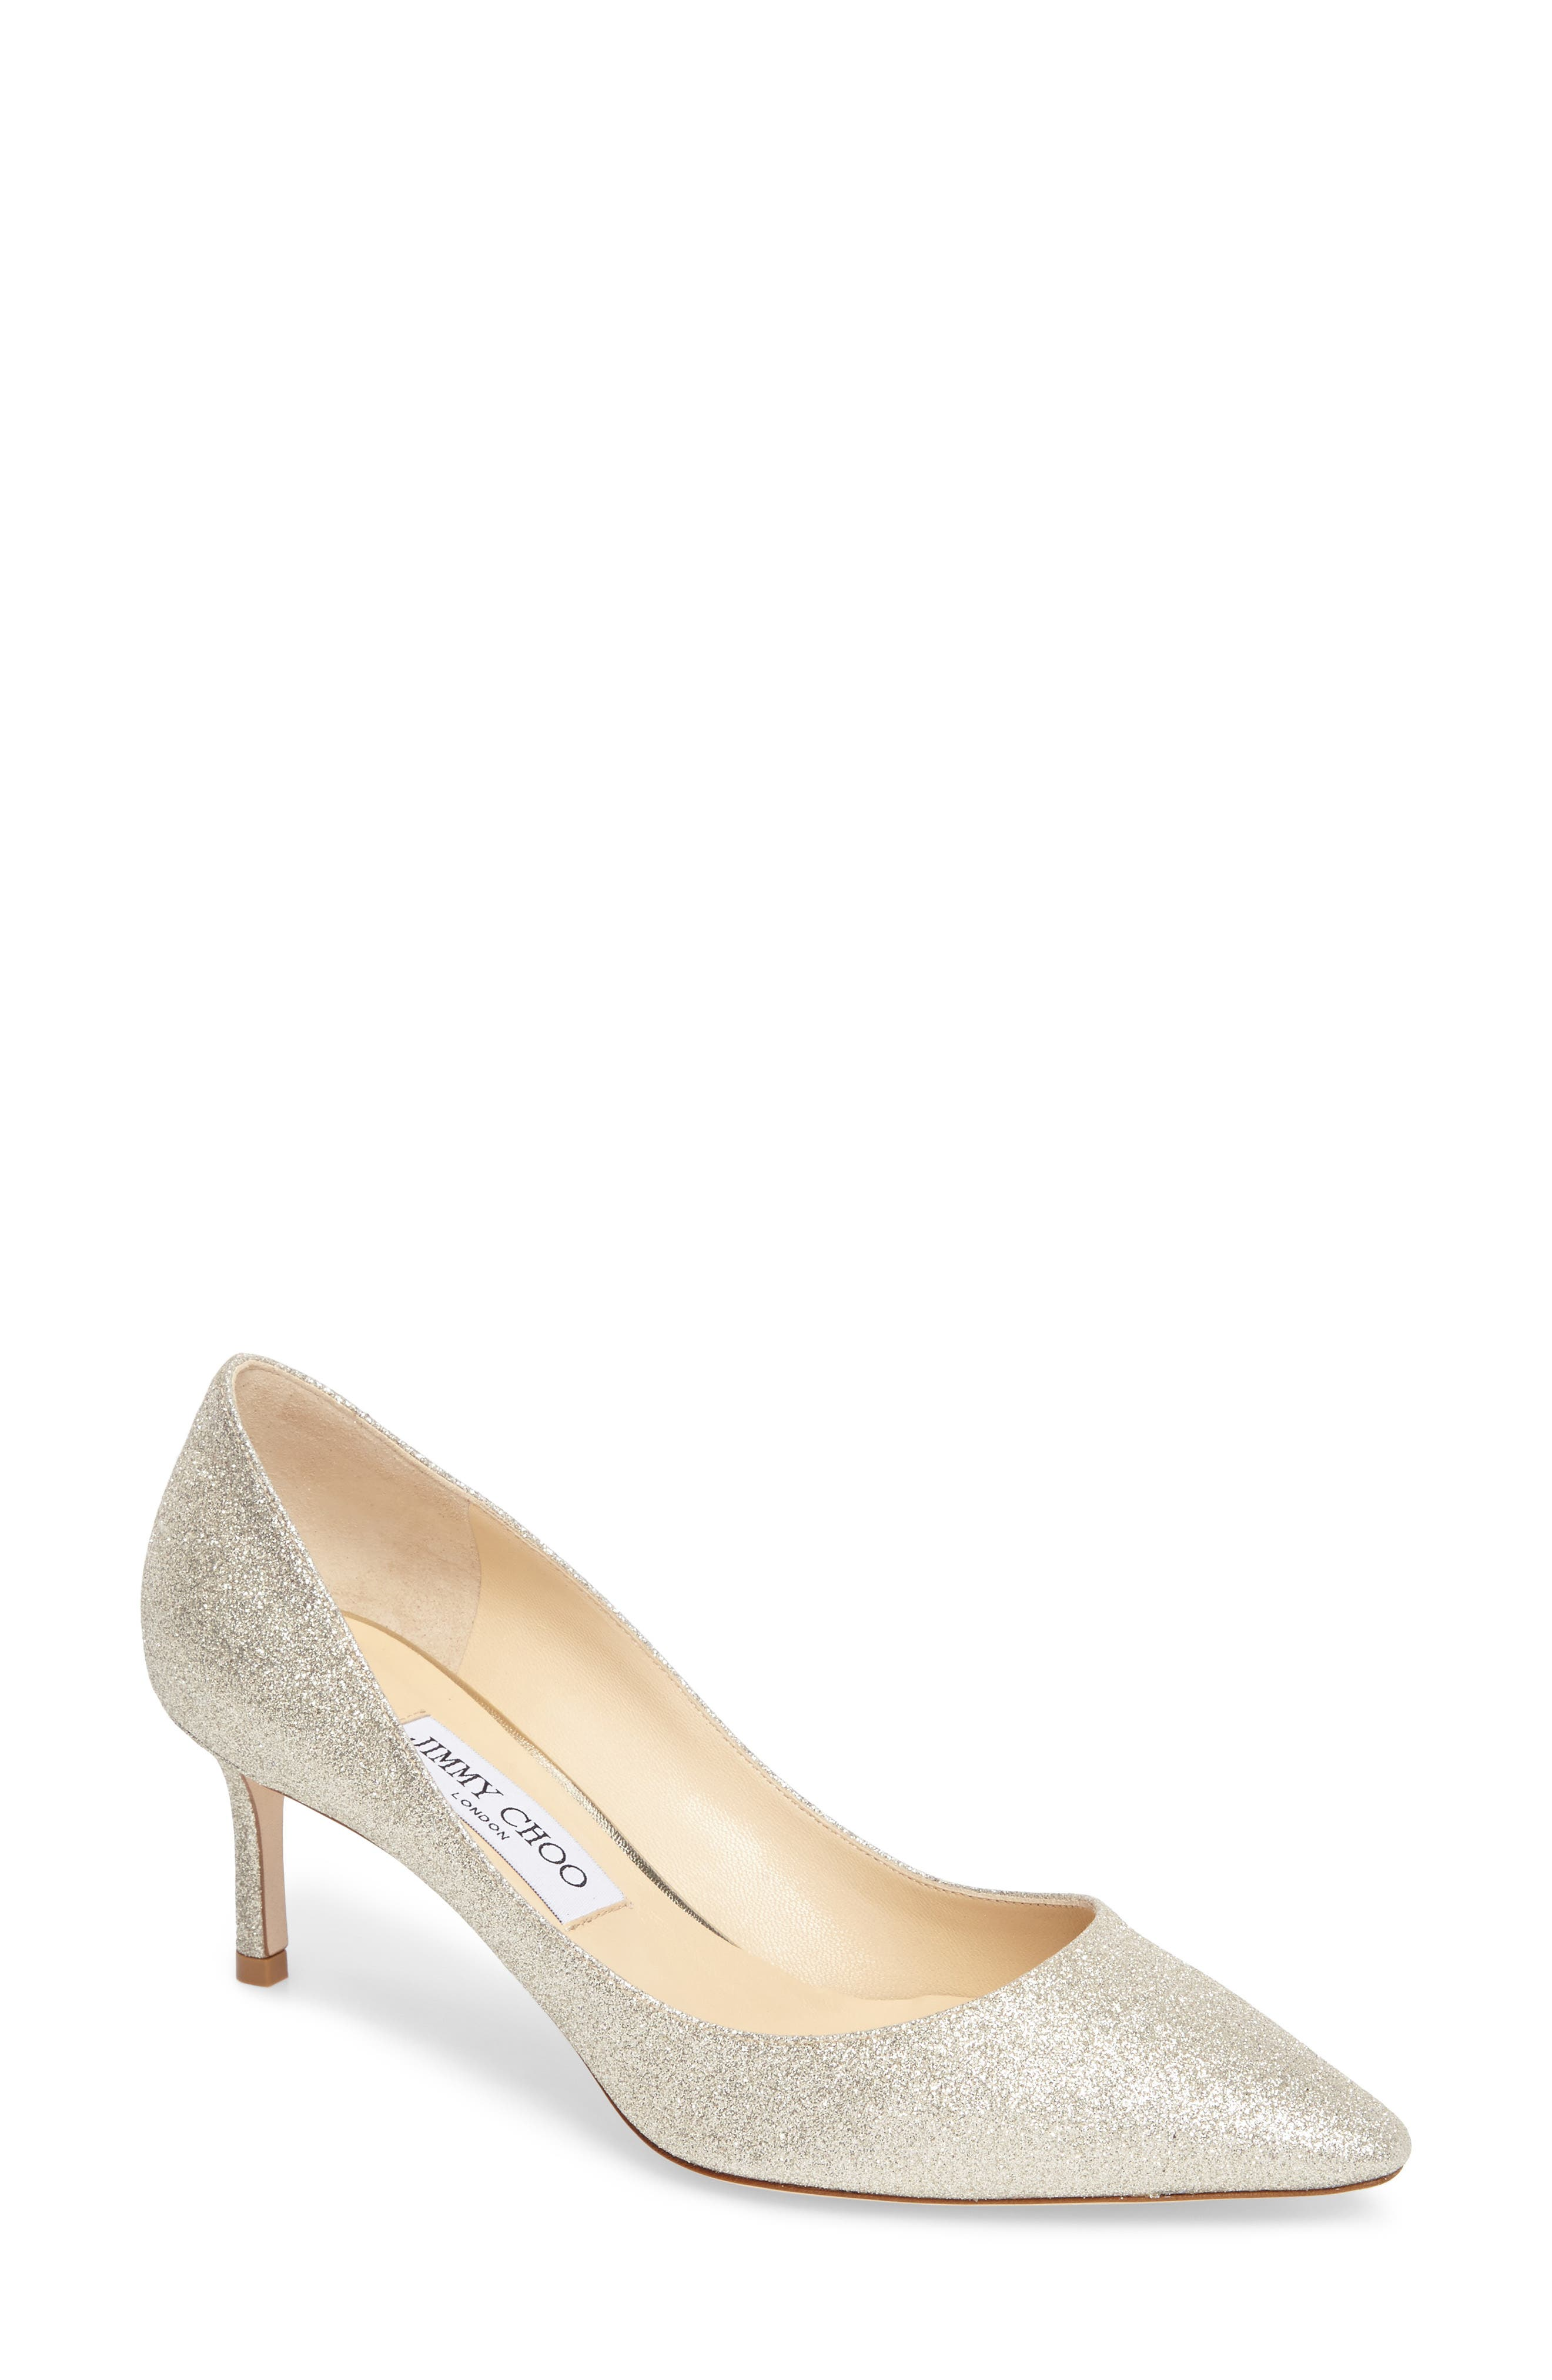 Main Image - Jimmy Choo Romy Glitter Pump (Women)